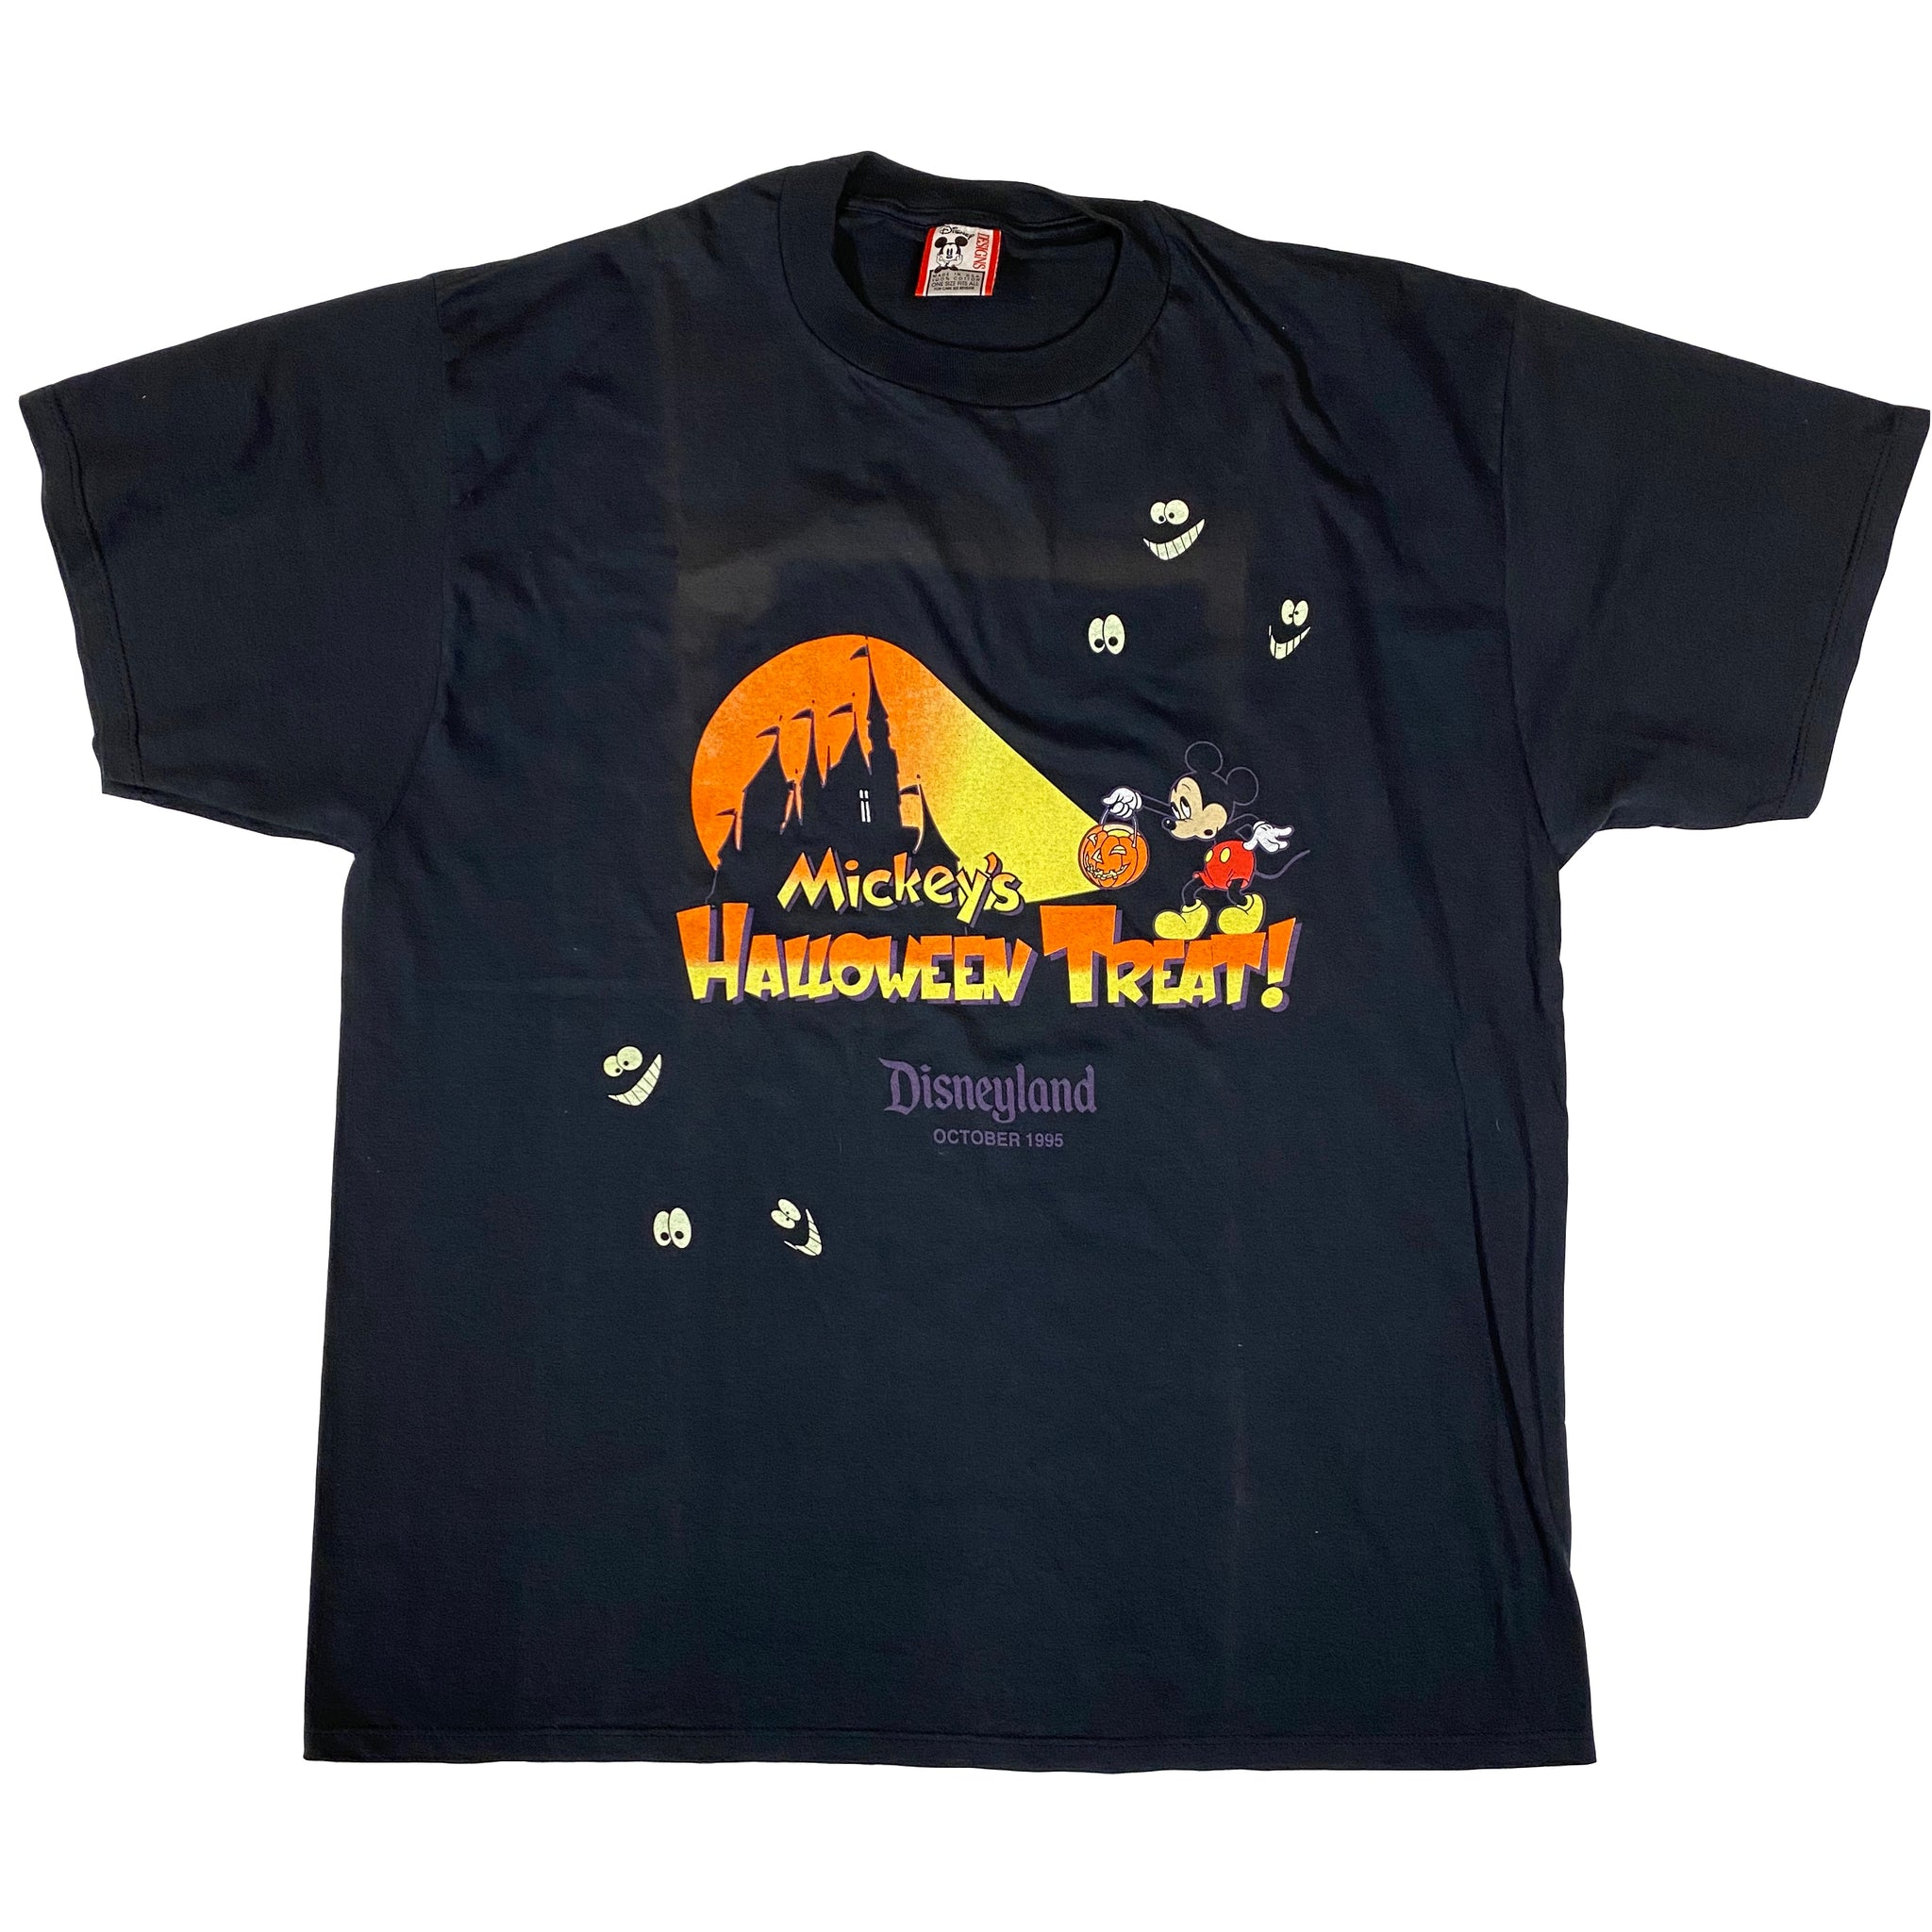 Mickey's Halloween Treat DS - XXL - VTG 95